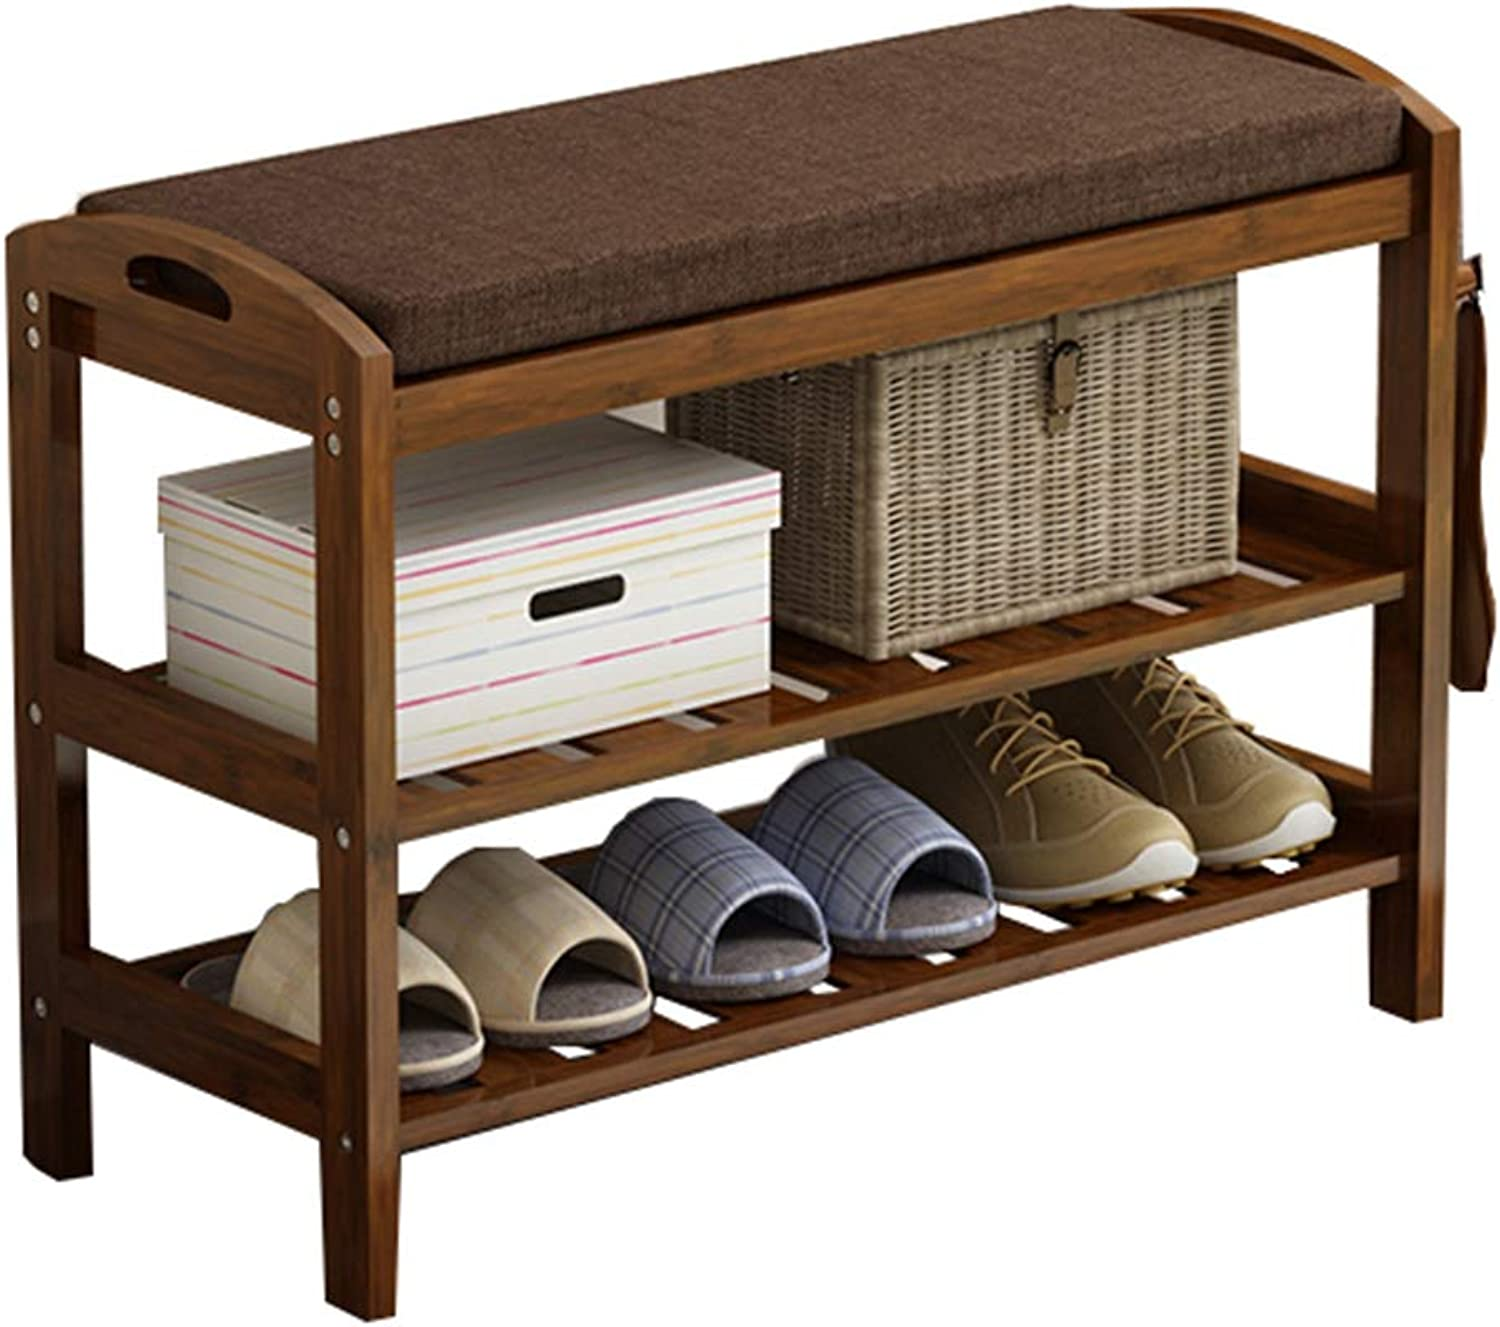 LYXPUZI Space Saving shoes Tower Cabinet shoes Rack-Multi-Layer Bamboo shoes Cabinet Home Hall Cabinet Locker-Wearing shoes Bench for shoes Bench Storage Organizer (Size   71x29x50cm)